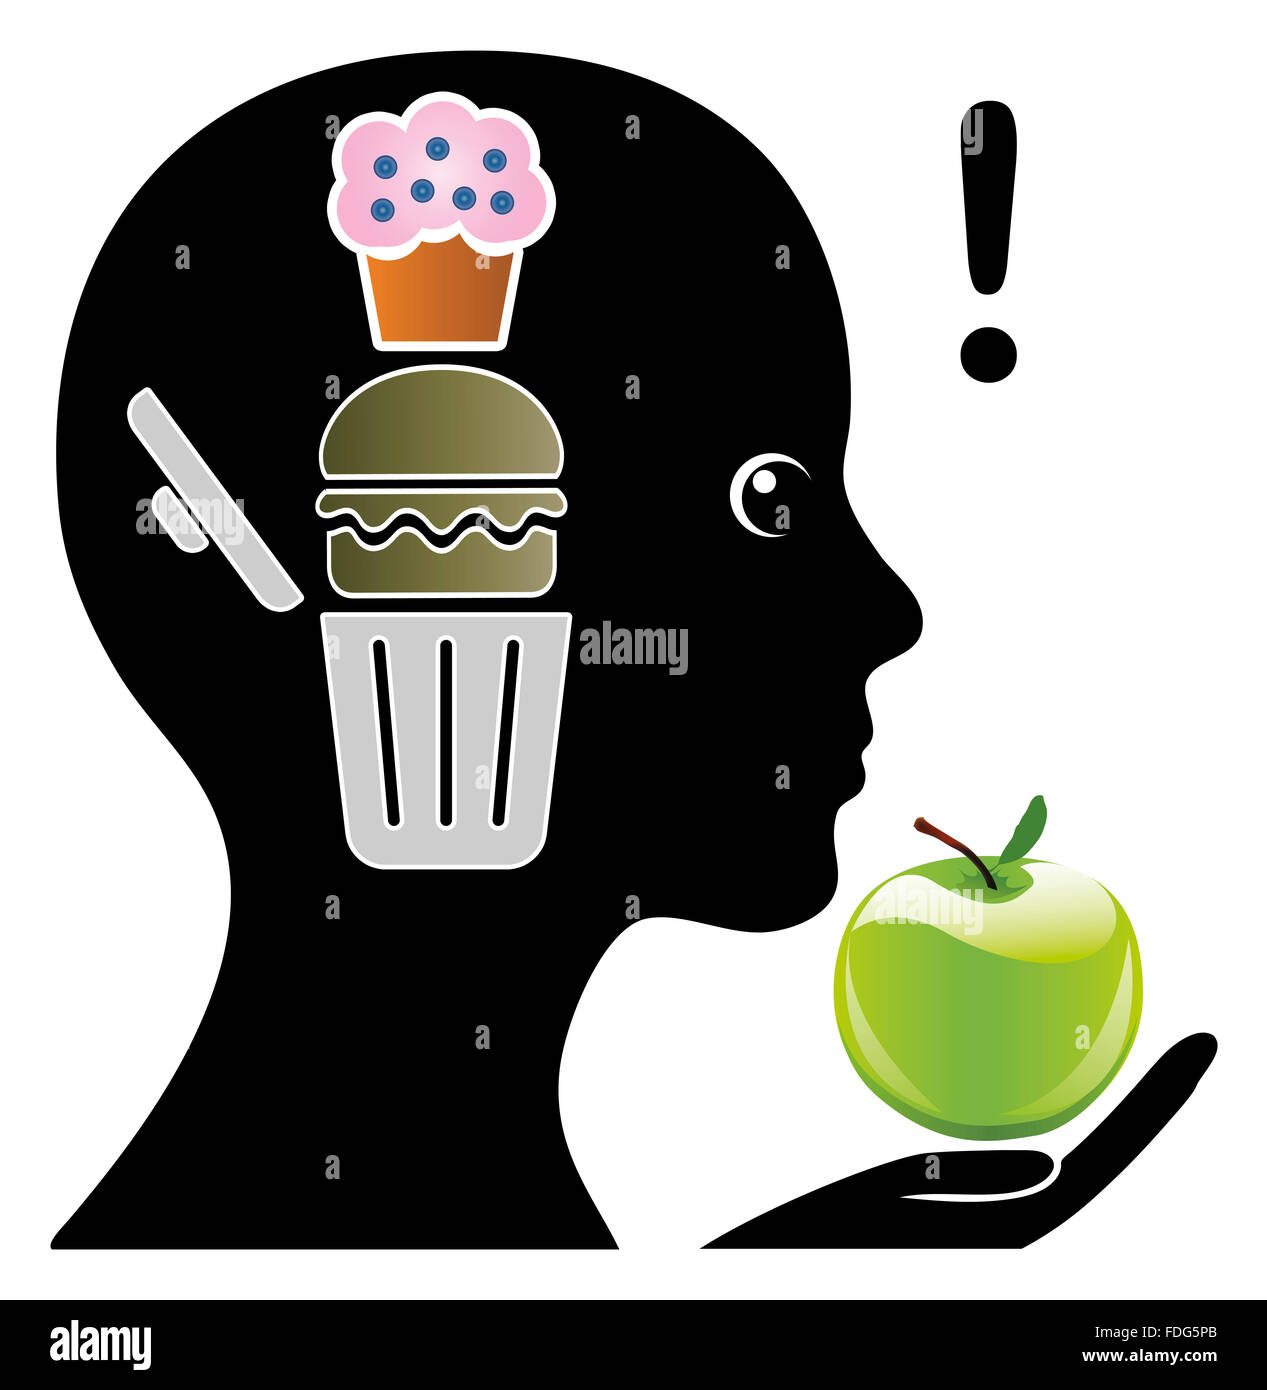 Brain training to crave healthy foods - Stock Image